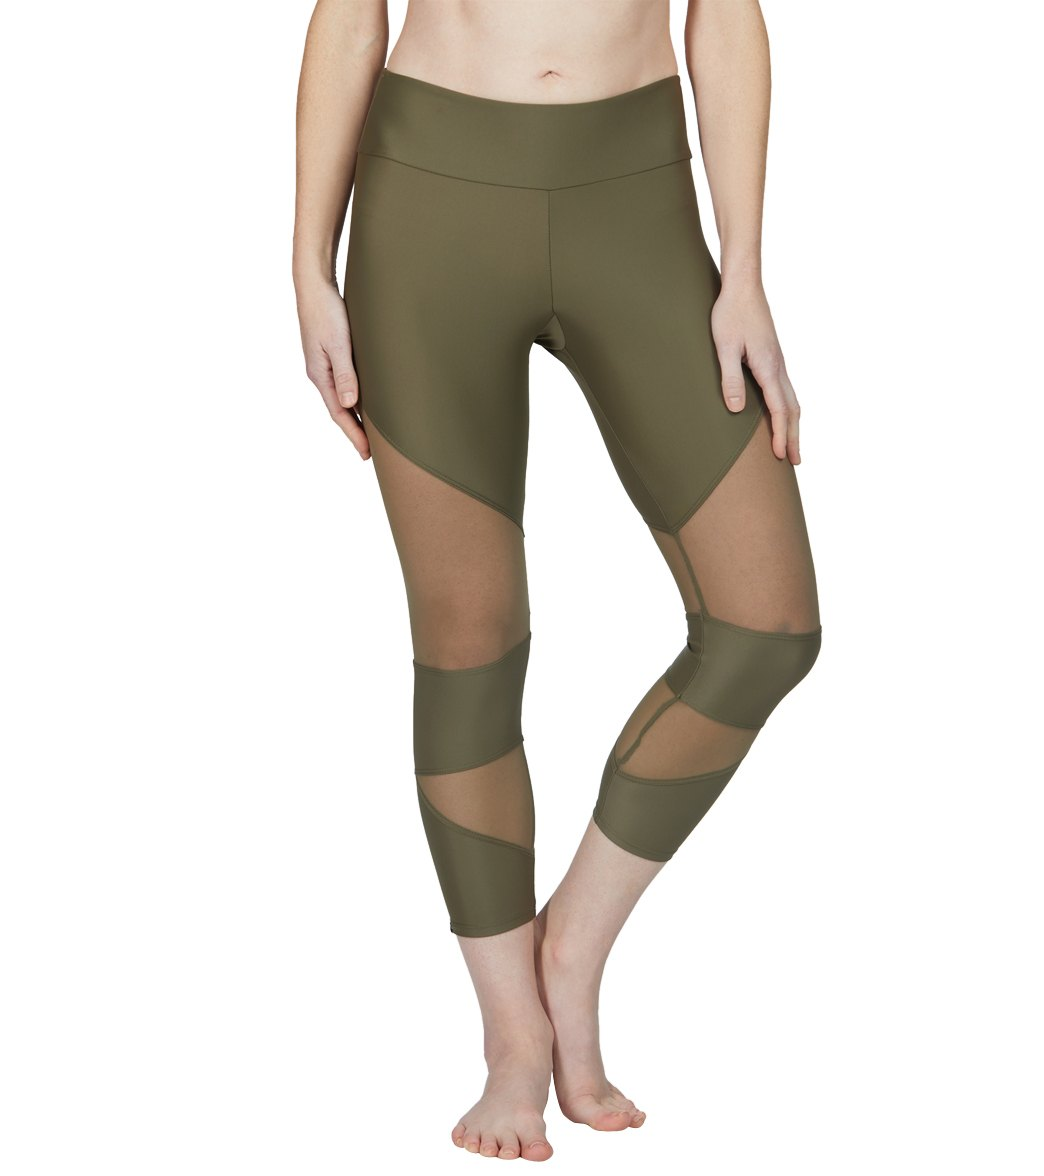 aabe06deb0c49 Onzie Cut Out Yoga Capris at SwimOutlet.com - Free Shipping